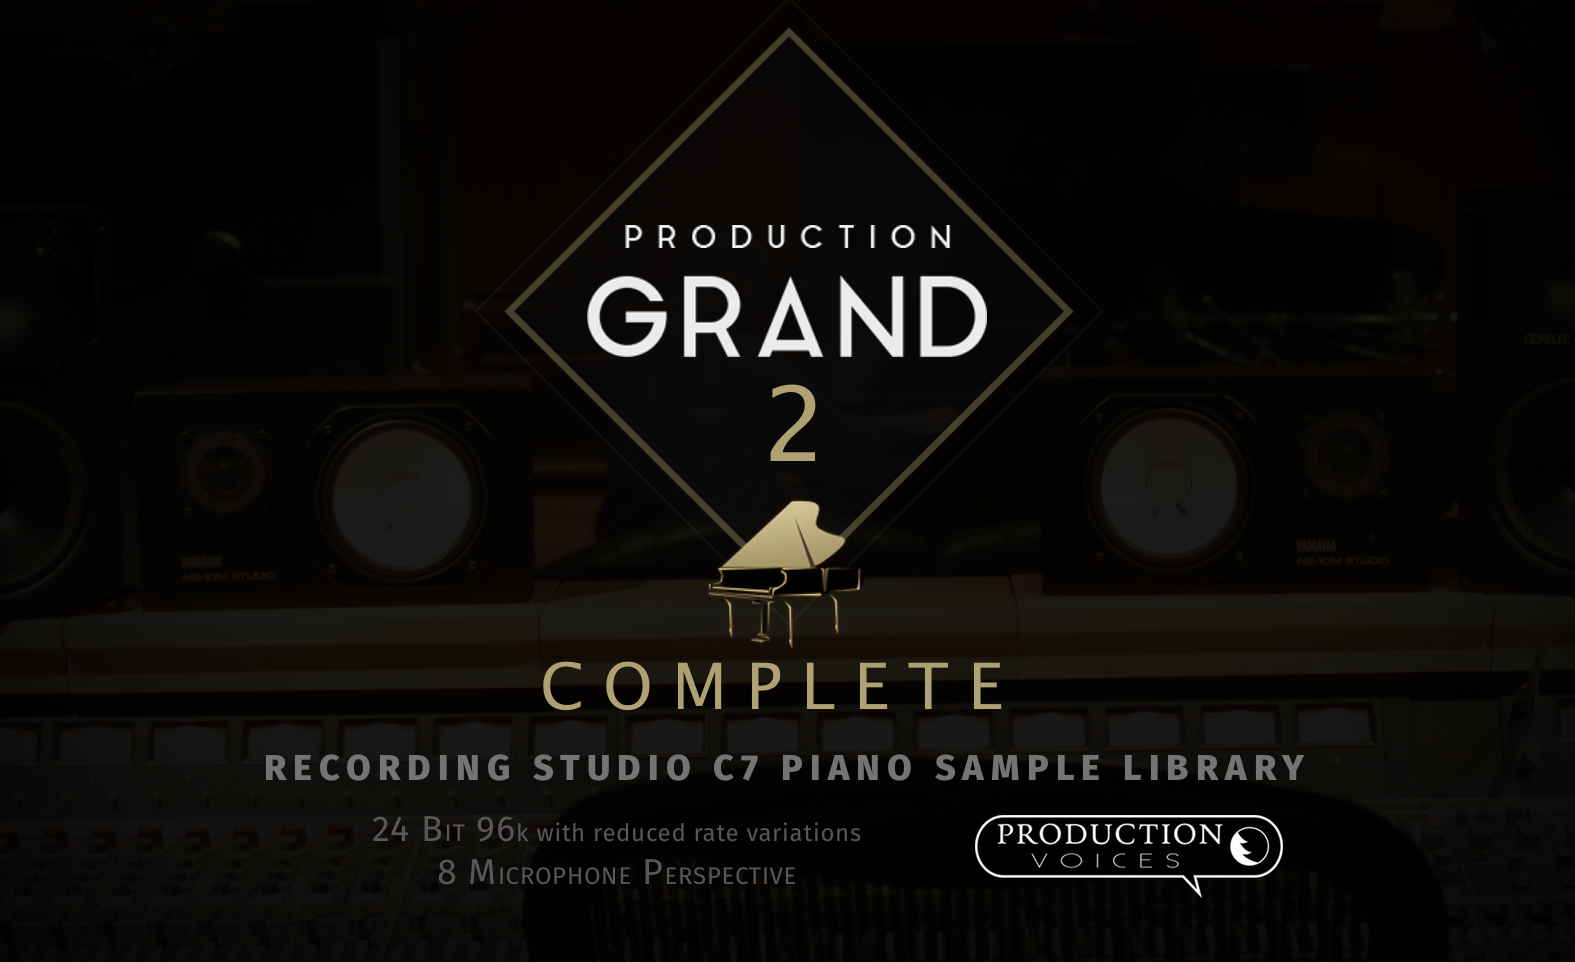 Production Grand 2